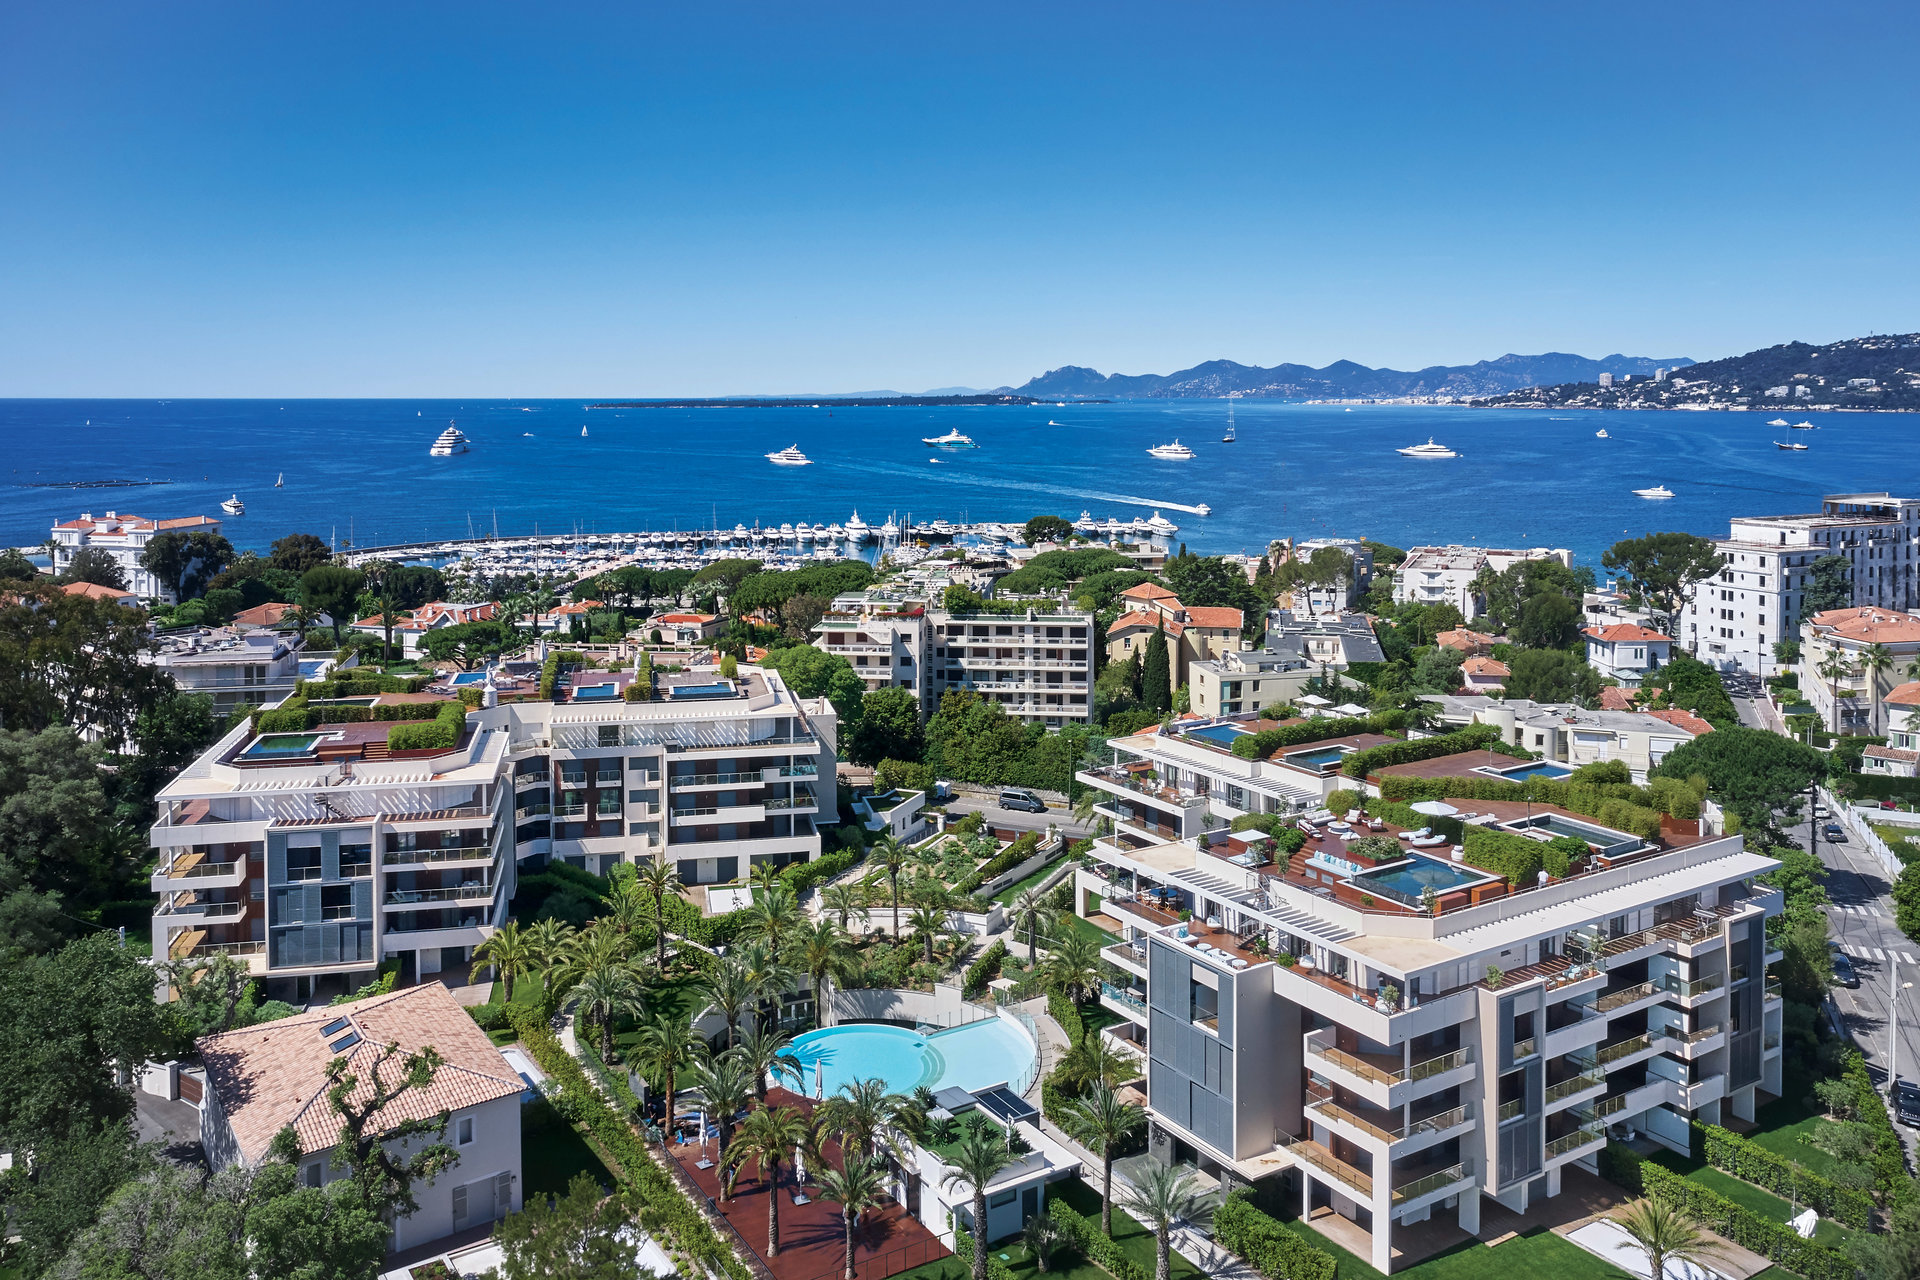 CAP D'ANTIBES -  New 3 bedroom apartement of 147m2 living surface with large terraces in exceptional résidence